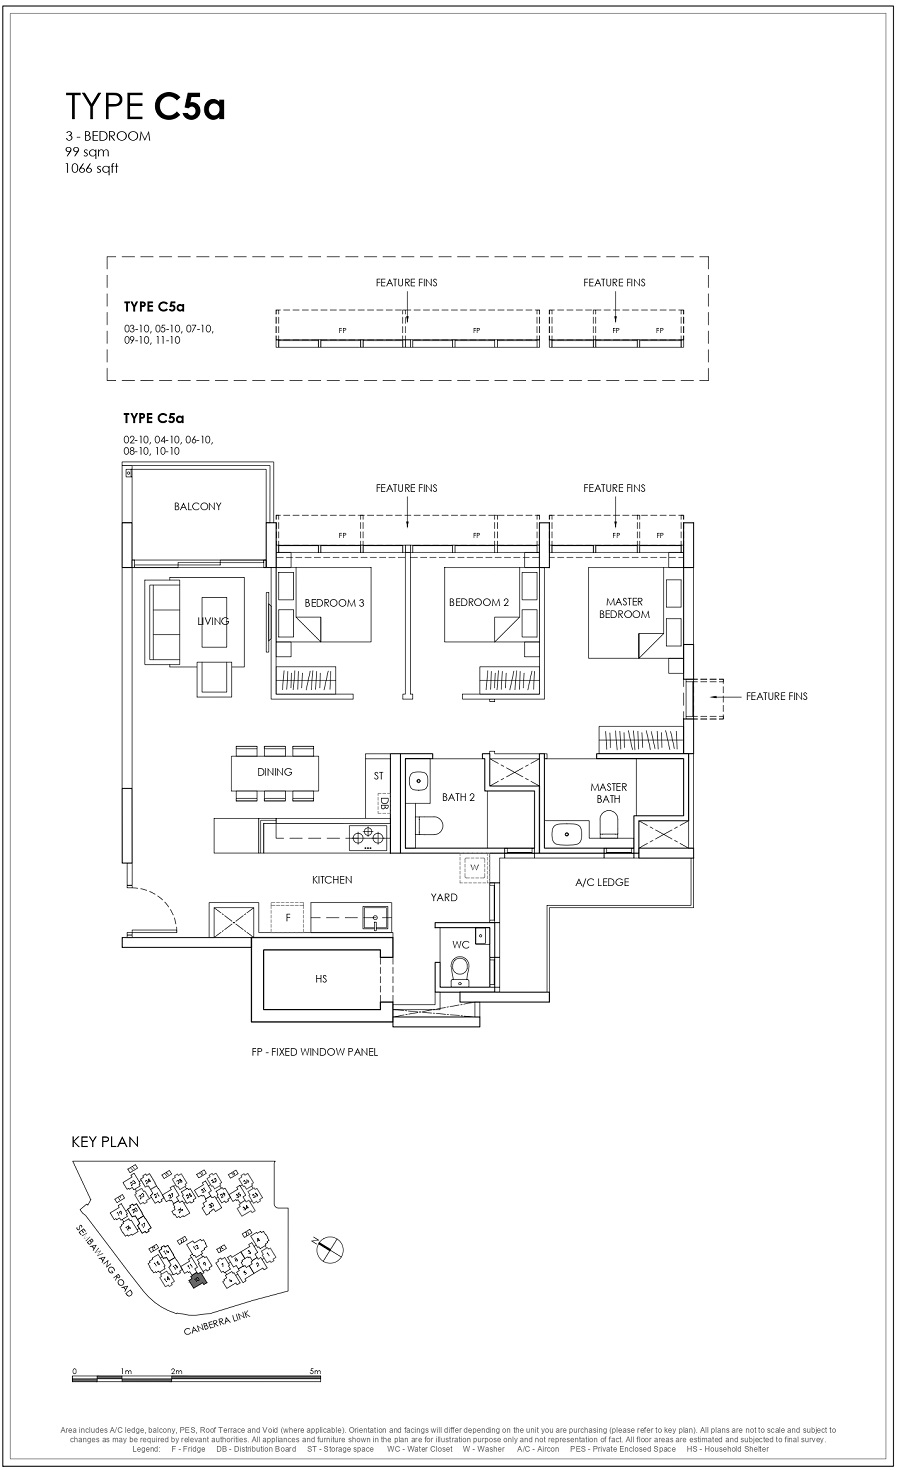 Provence Residence EC 3BR Type C5a 99_1066